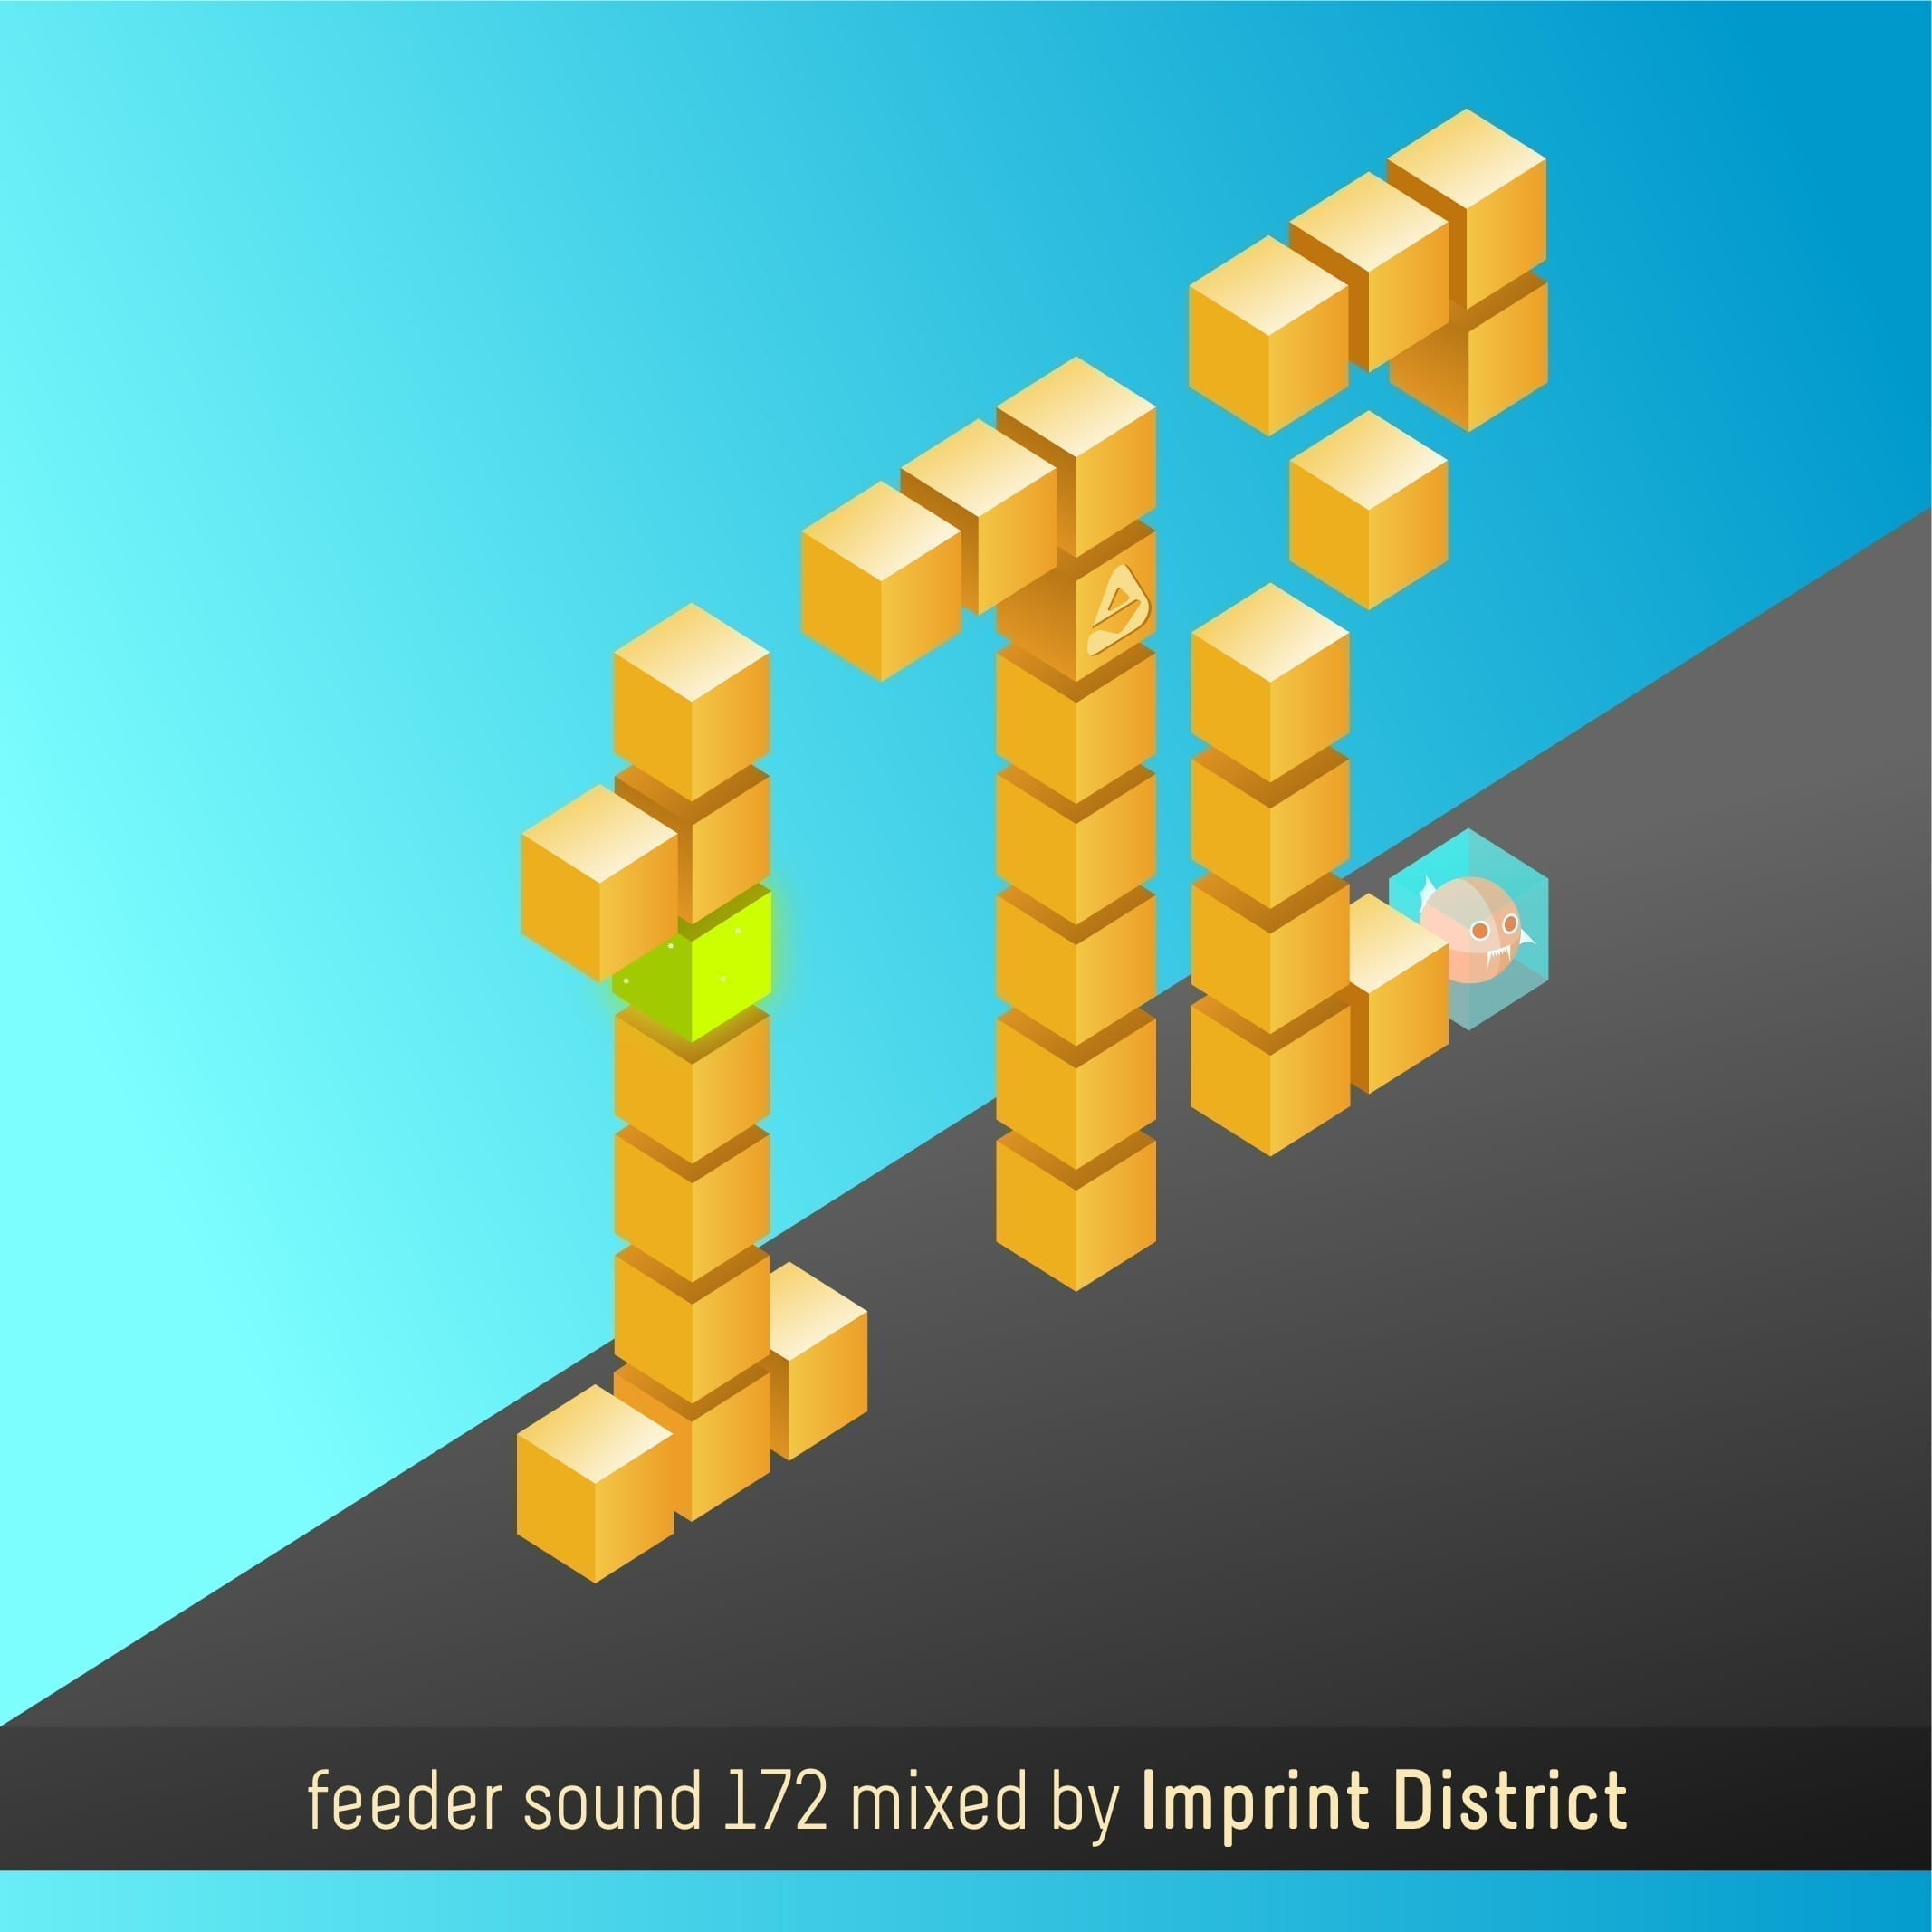 feeder sound 172 mixed by Imprint District